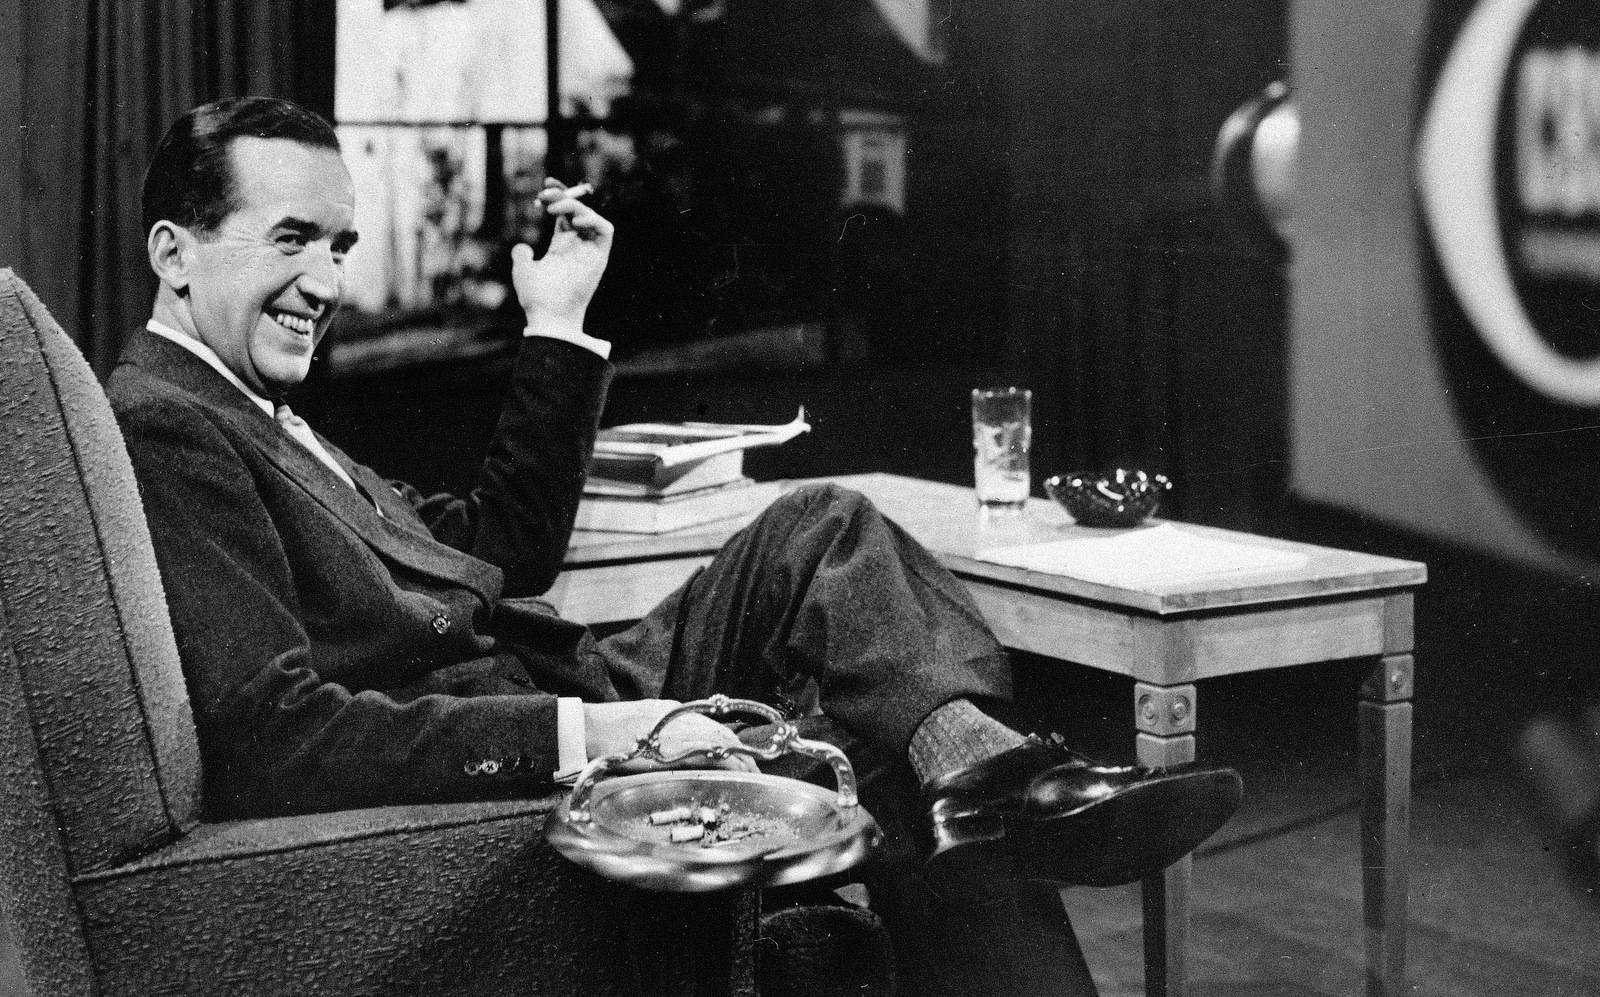 CBS News broadcaster Edward R. Murrow smokes a cigarette on a CBS set. (AP Photo)